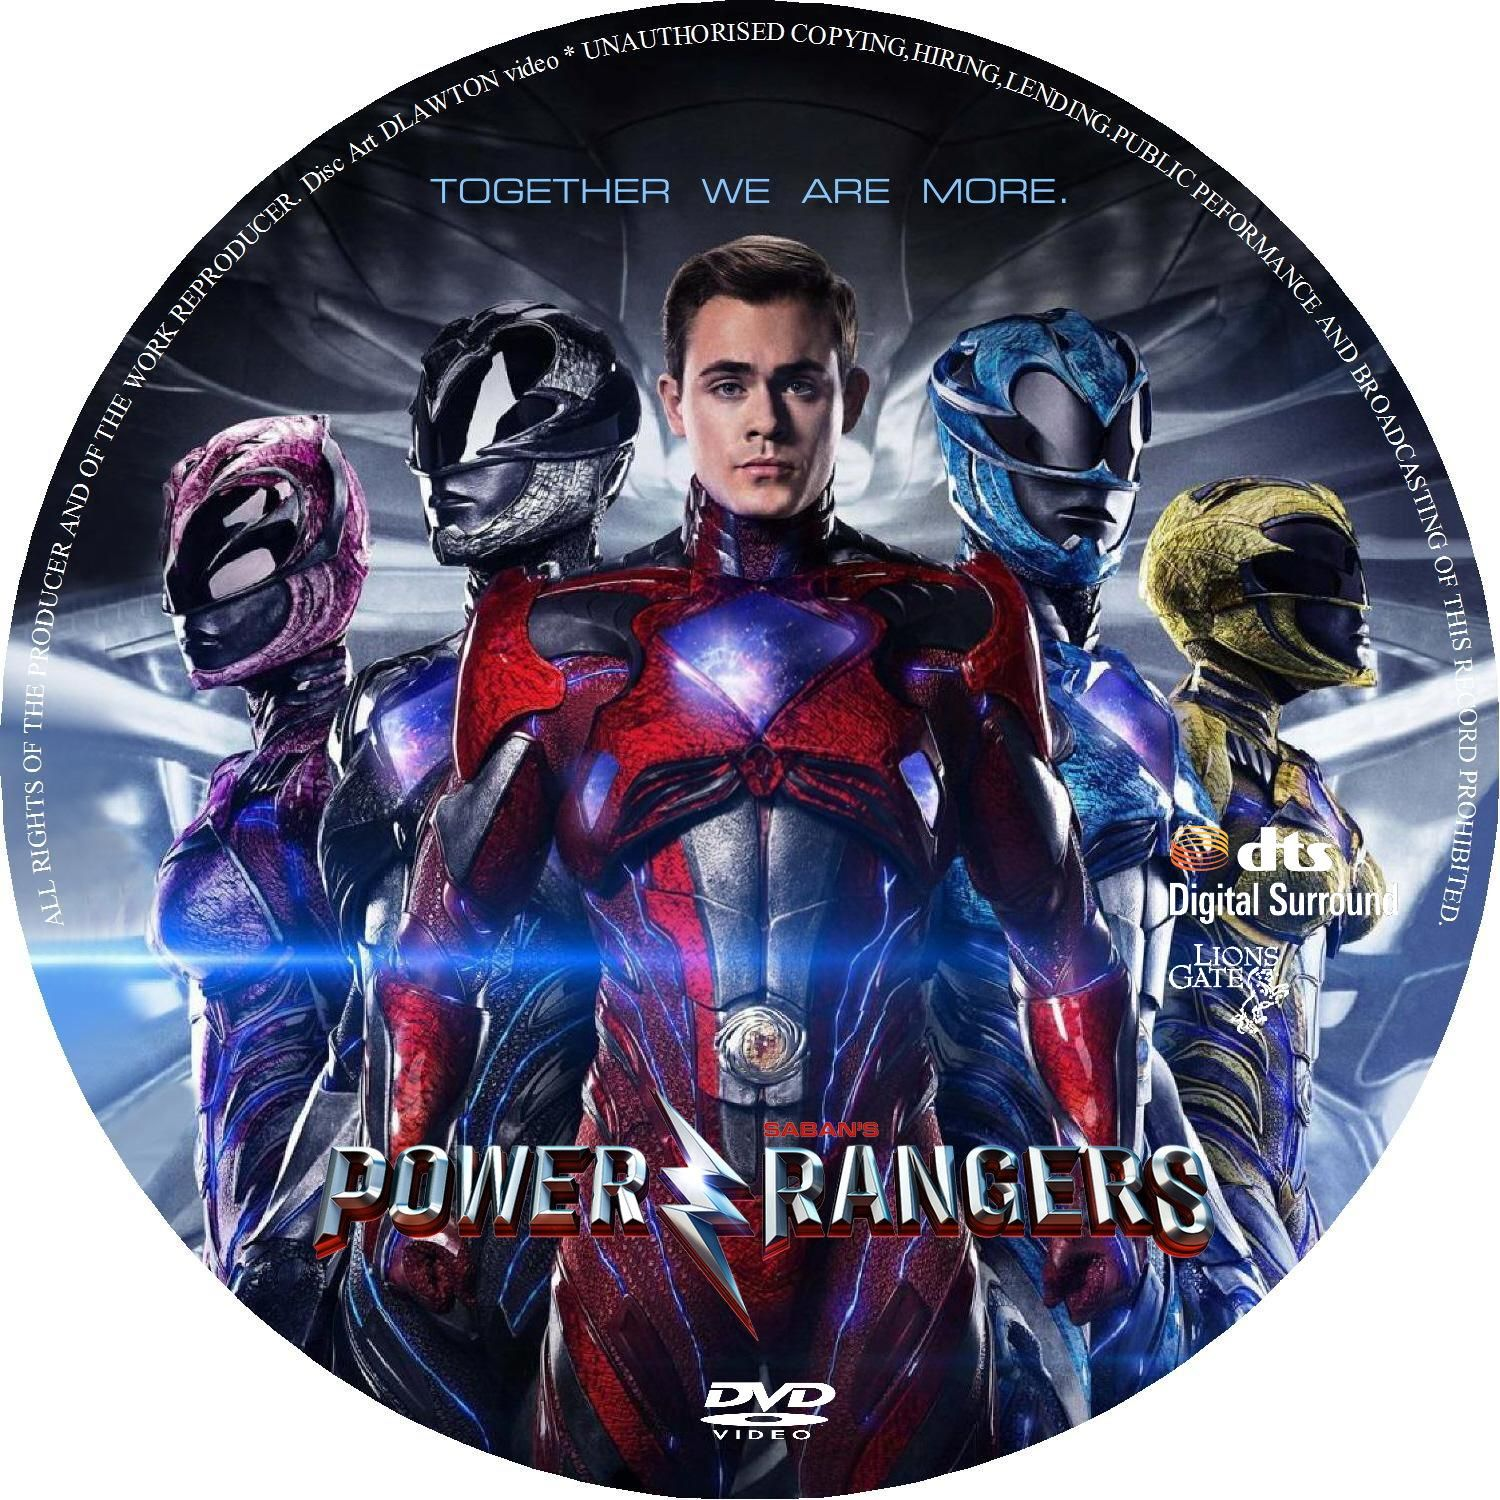 watch power rangers 2017 streaming online for free